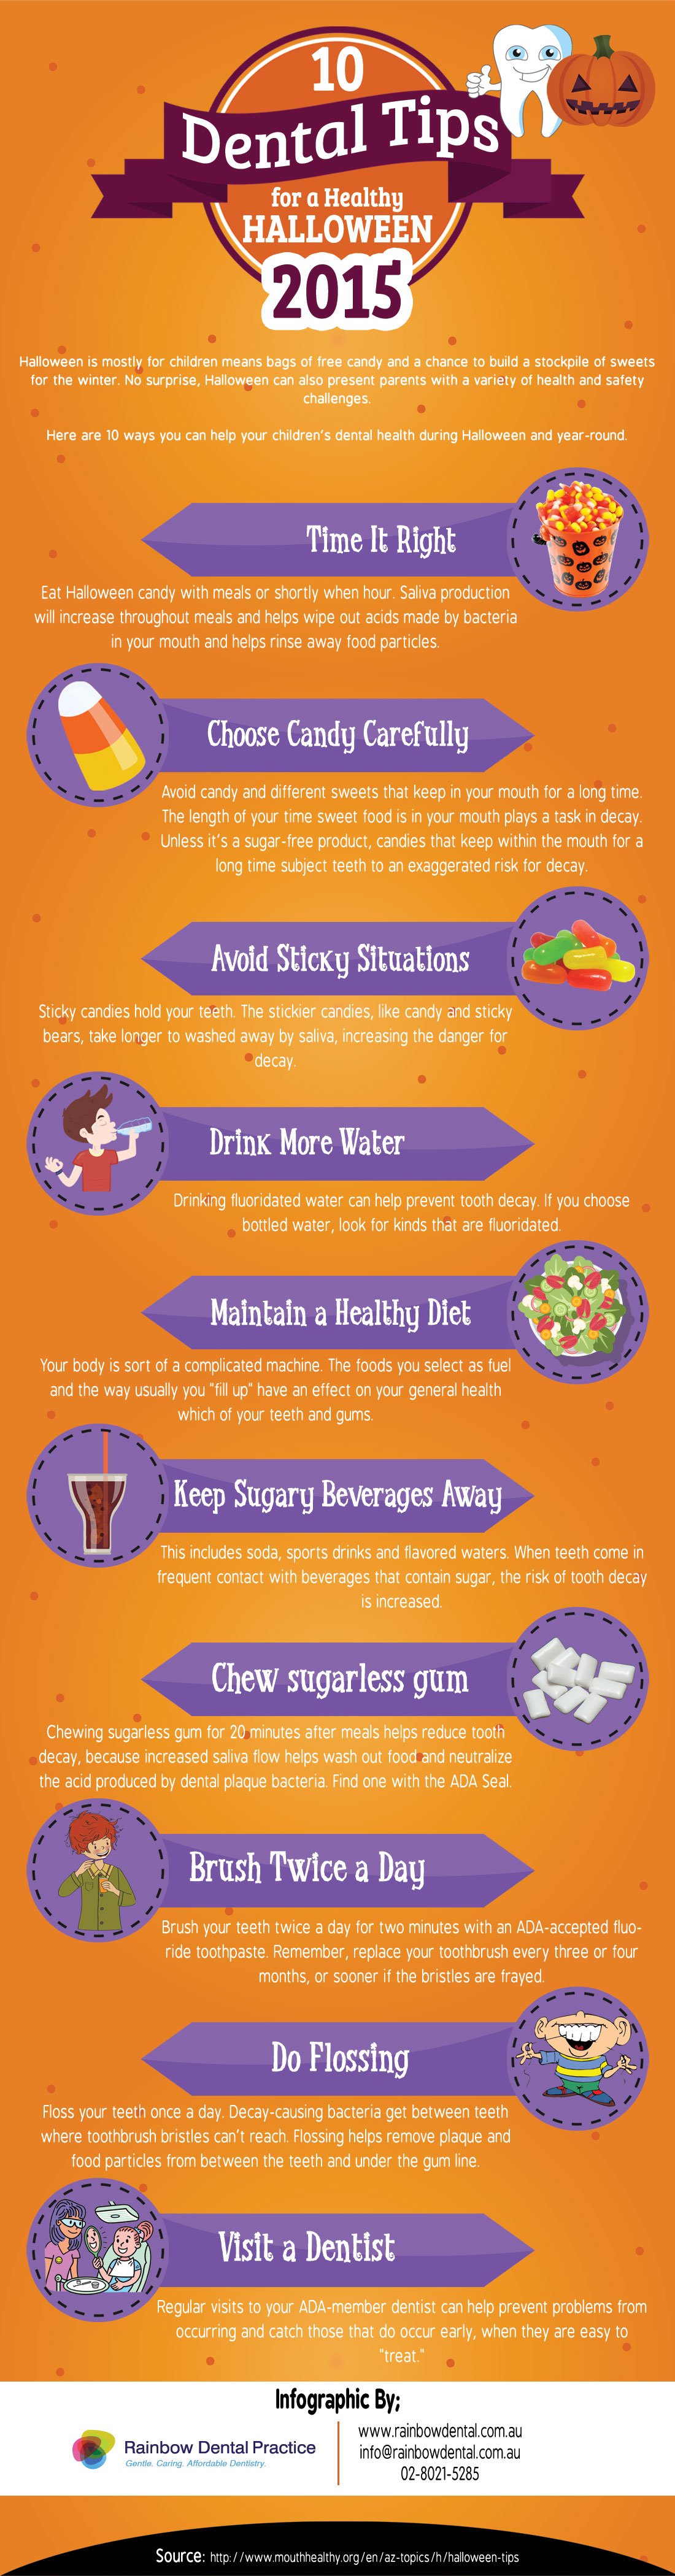 10-Dental-tips-for-Healthy-Halloween-2015